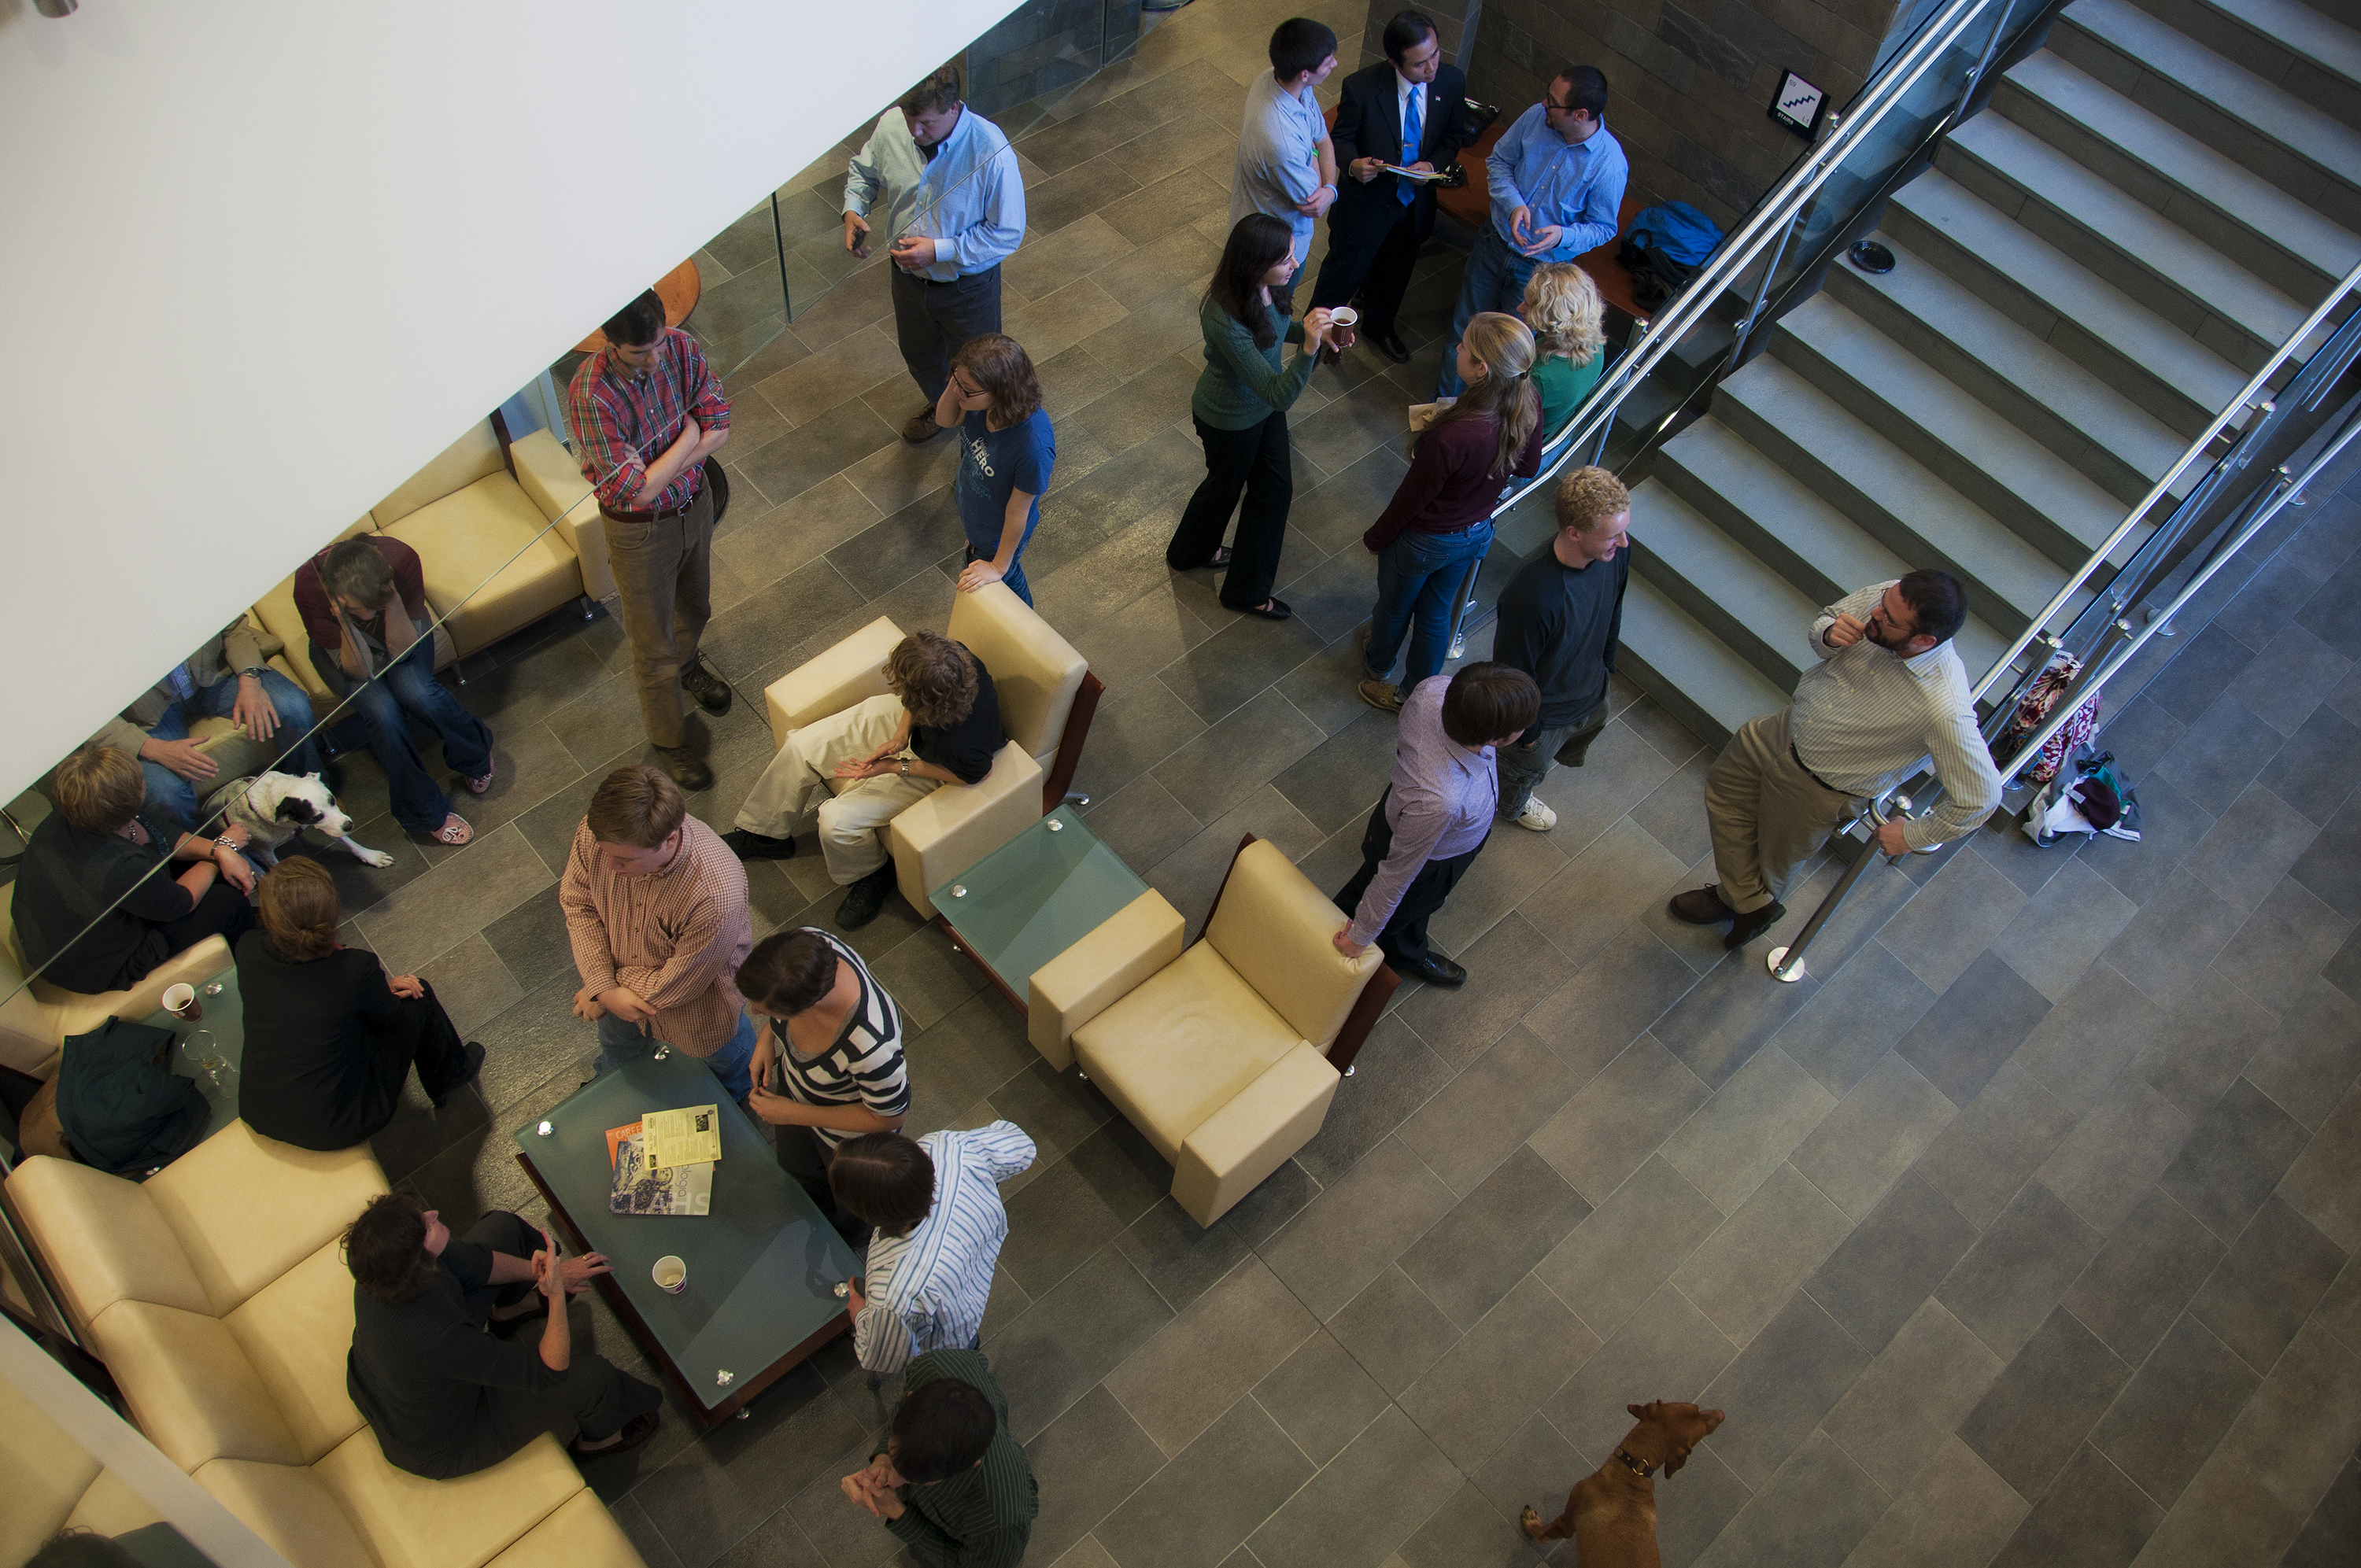 View looking down on a large group of students, faculty, and staff interacting in an open atrium area.